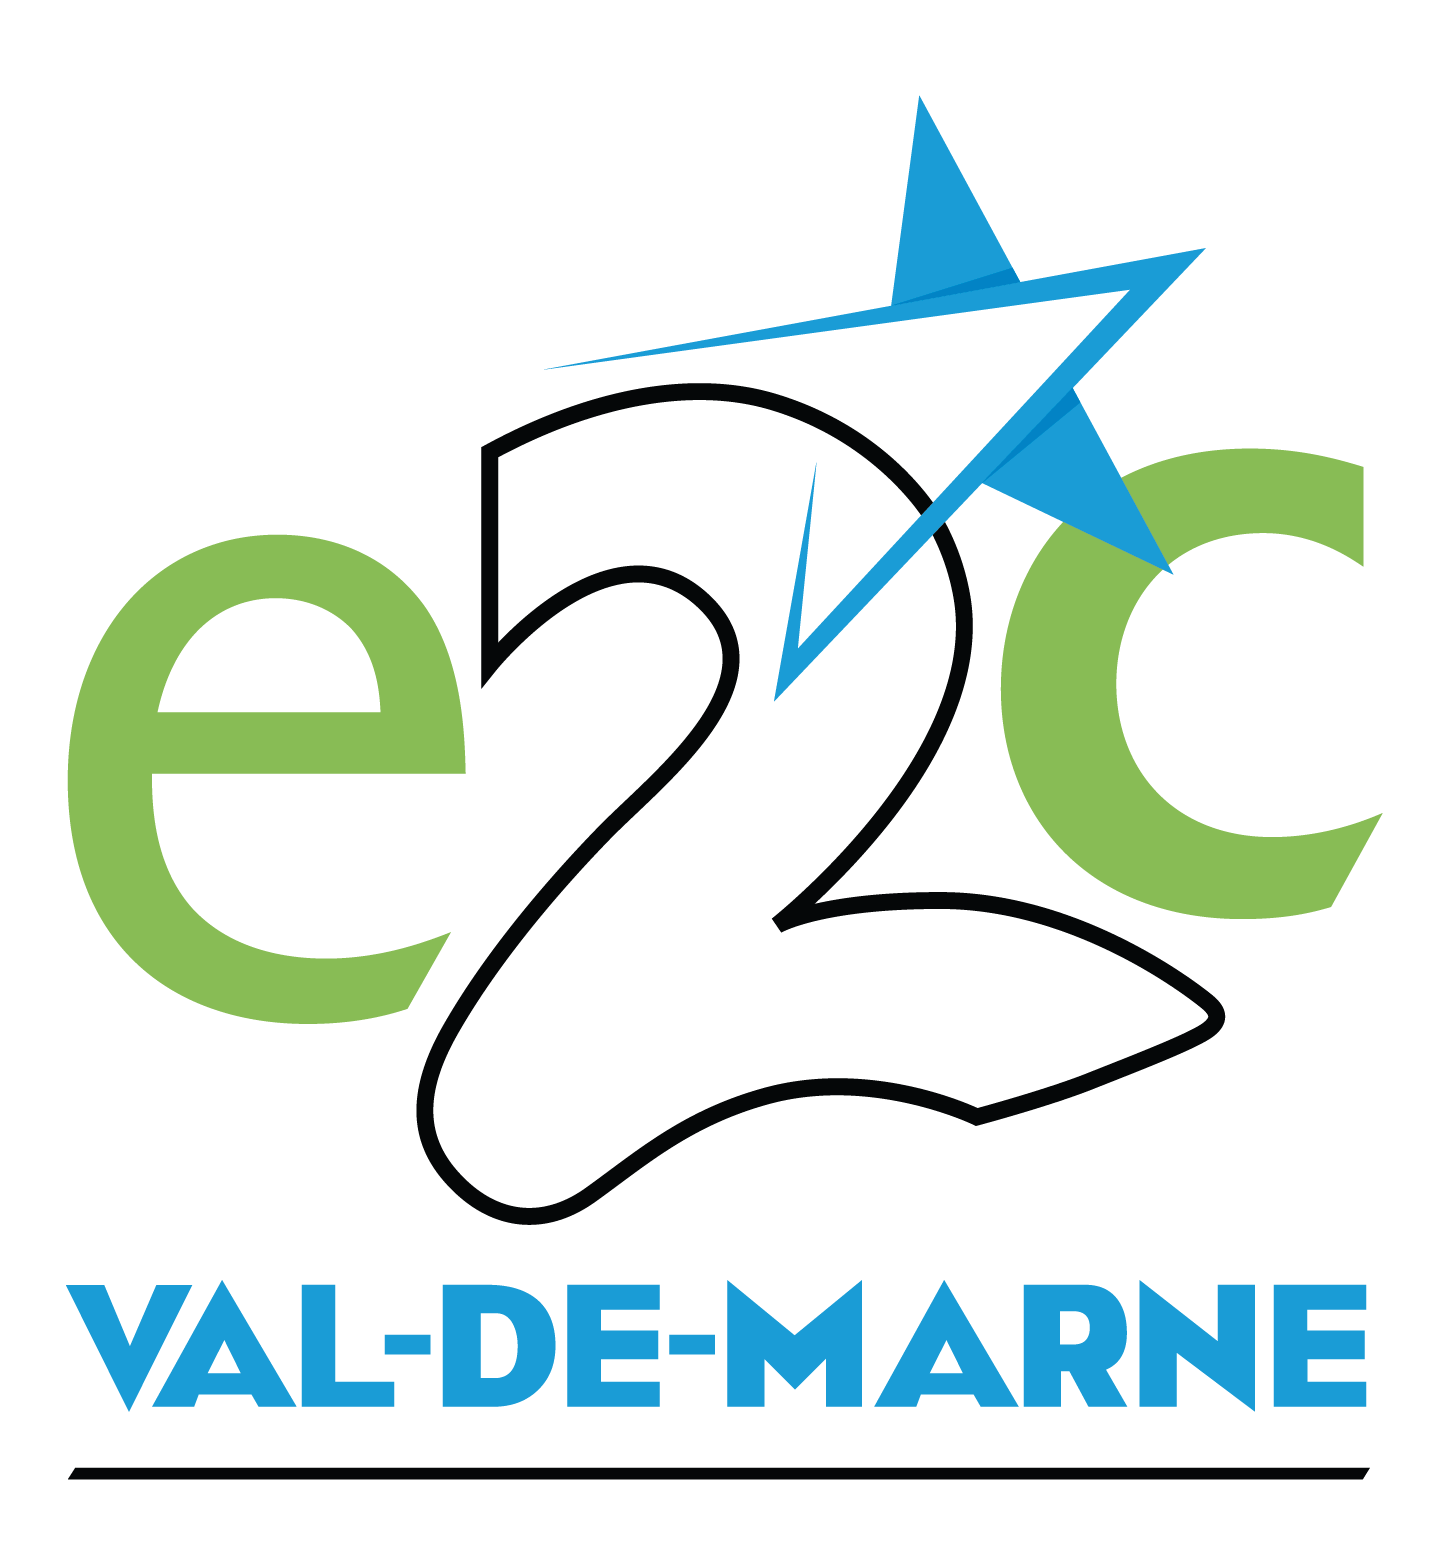 E2C94, école de la 2eme chance Val-de-Marne